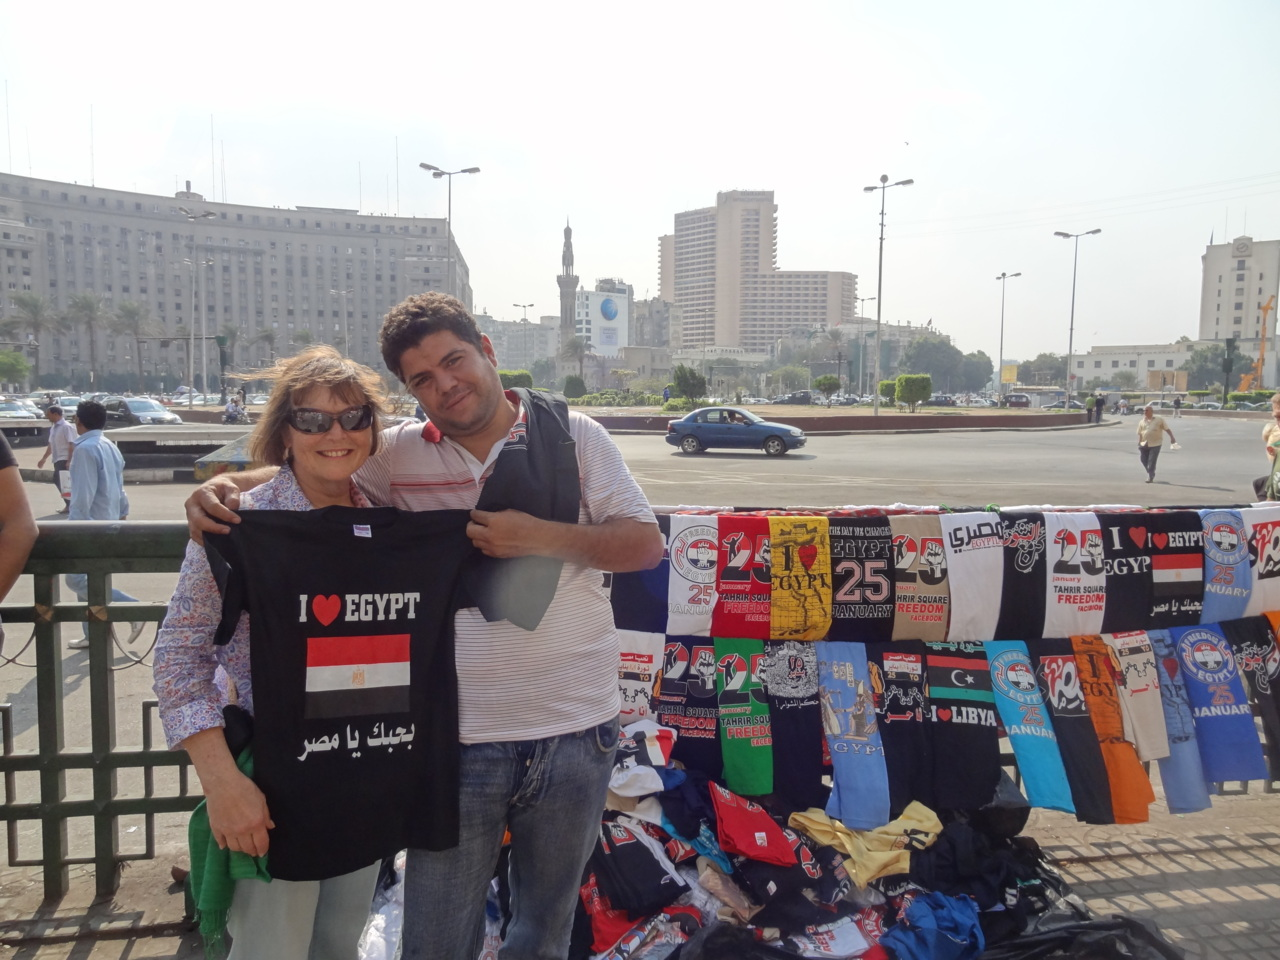 Tahrir Square when it's peaceful. The usual souvenirs and tee shirts. But now so many tee shirts celebrate the January 25th revolution, emblazoned with the date or pictures of broken chains. Feels good.